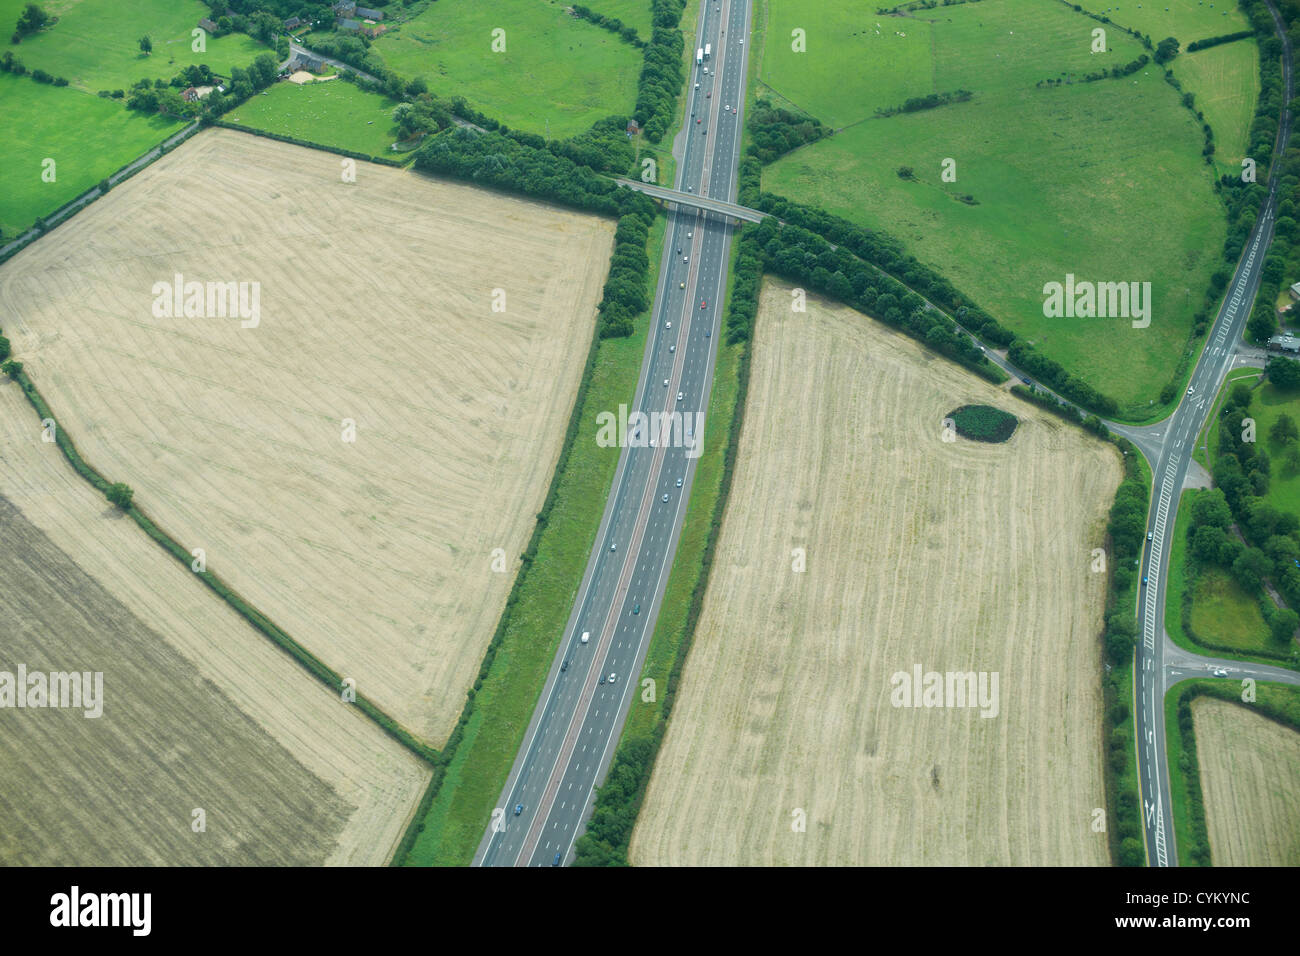 Aerial view of rural fields and road Stock Photo